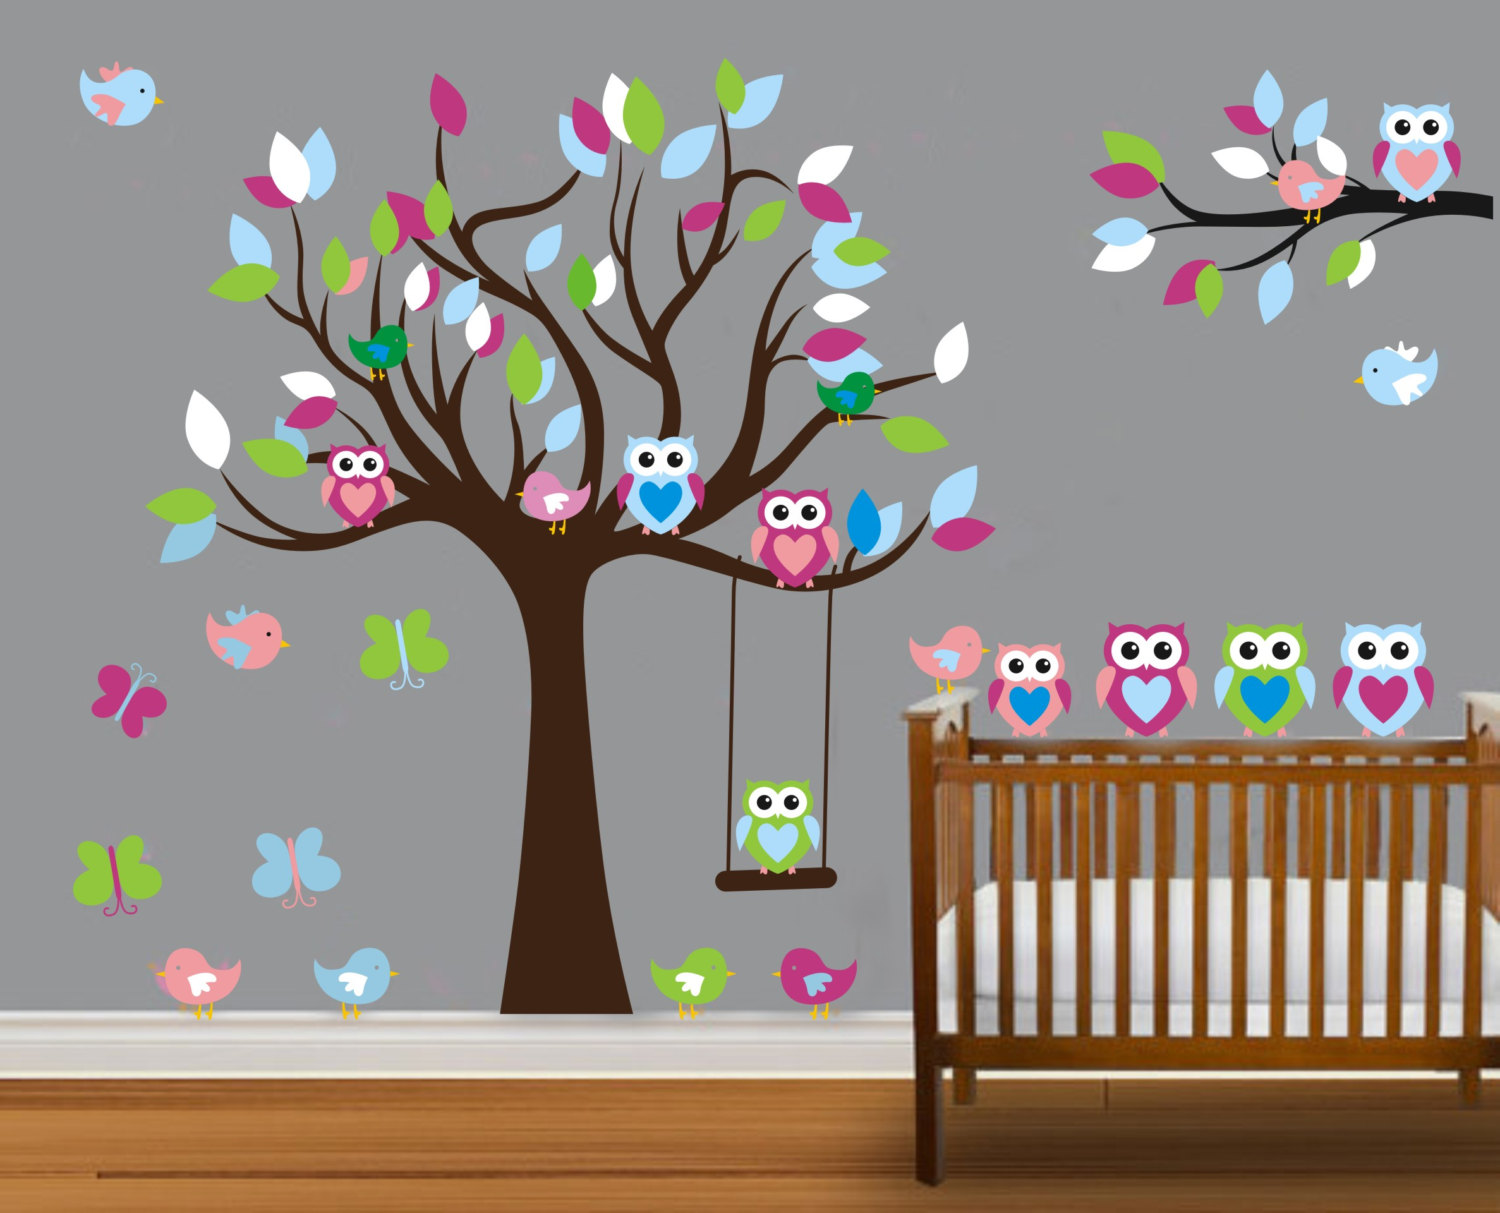 Vinyl Wall Decal On Colorful Nursery Cute Owl Family Tree Trees Owls Home House Art Decals Sticker Stickers Baby Room Kid 815